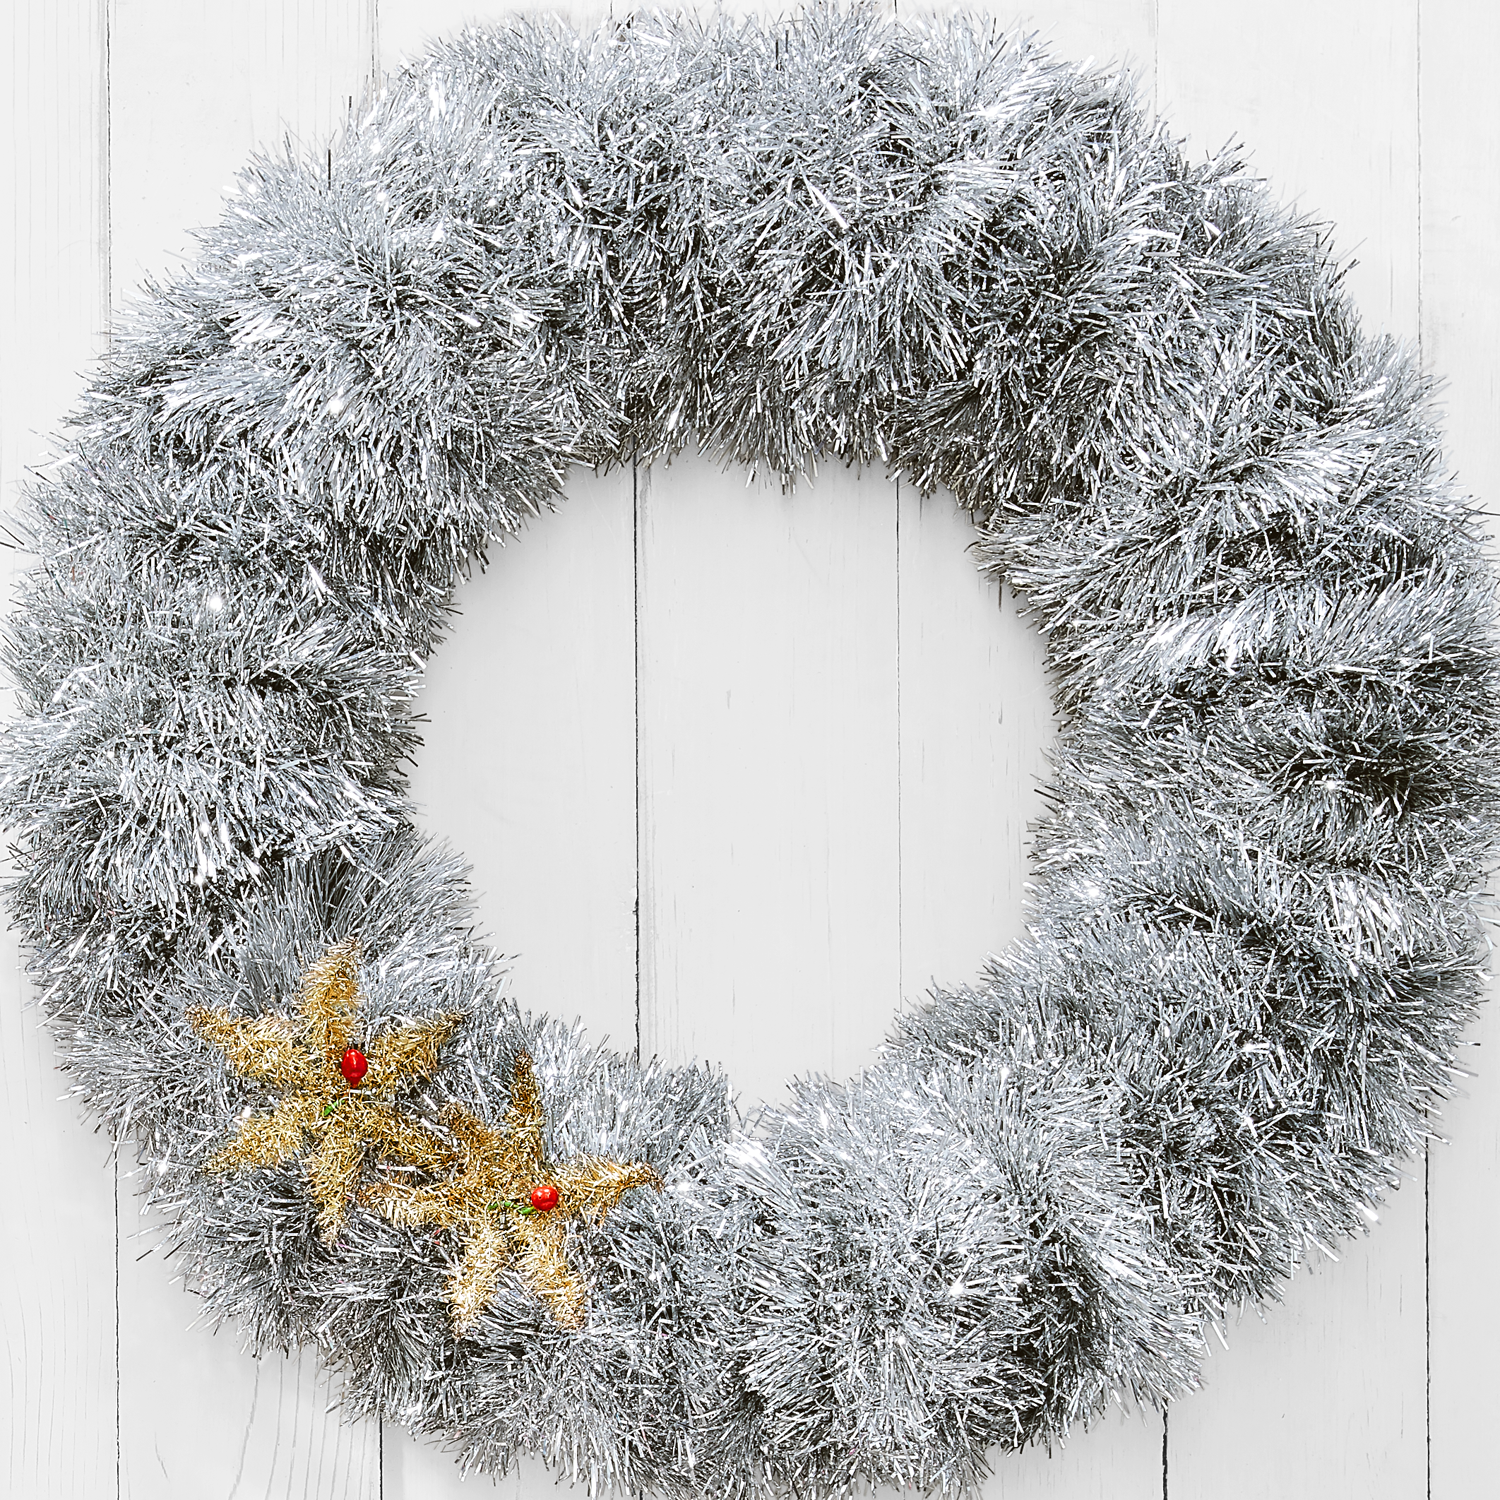 Rustic Christmas Wreath Diy.60 Diy Christmas Wreaths How To Make A Holiday Wreath Craft